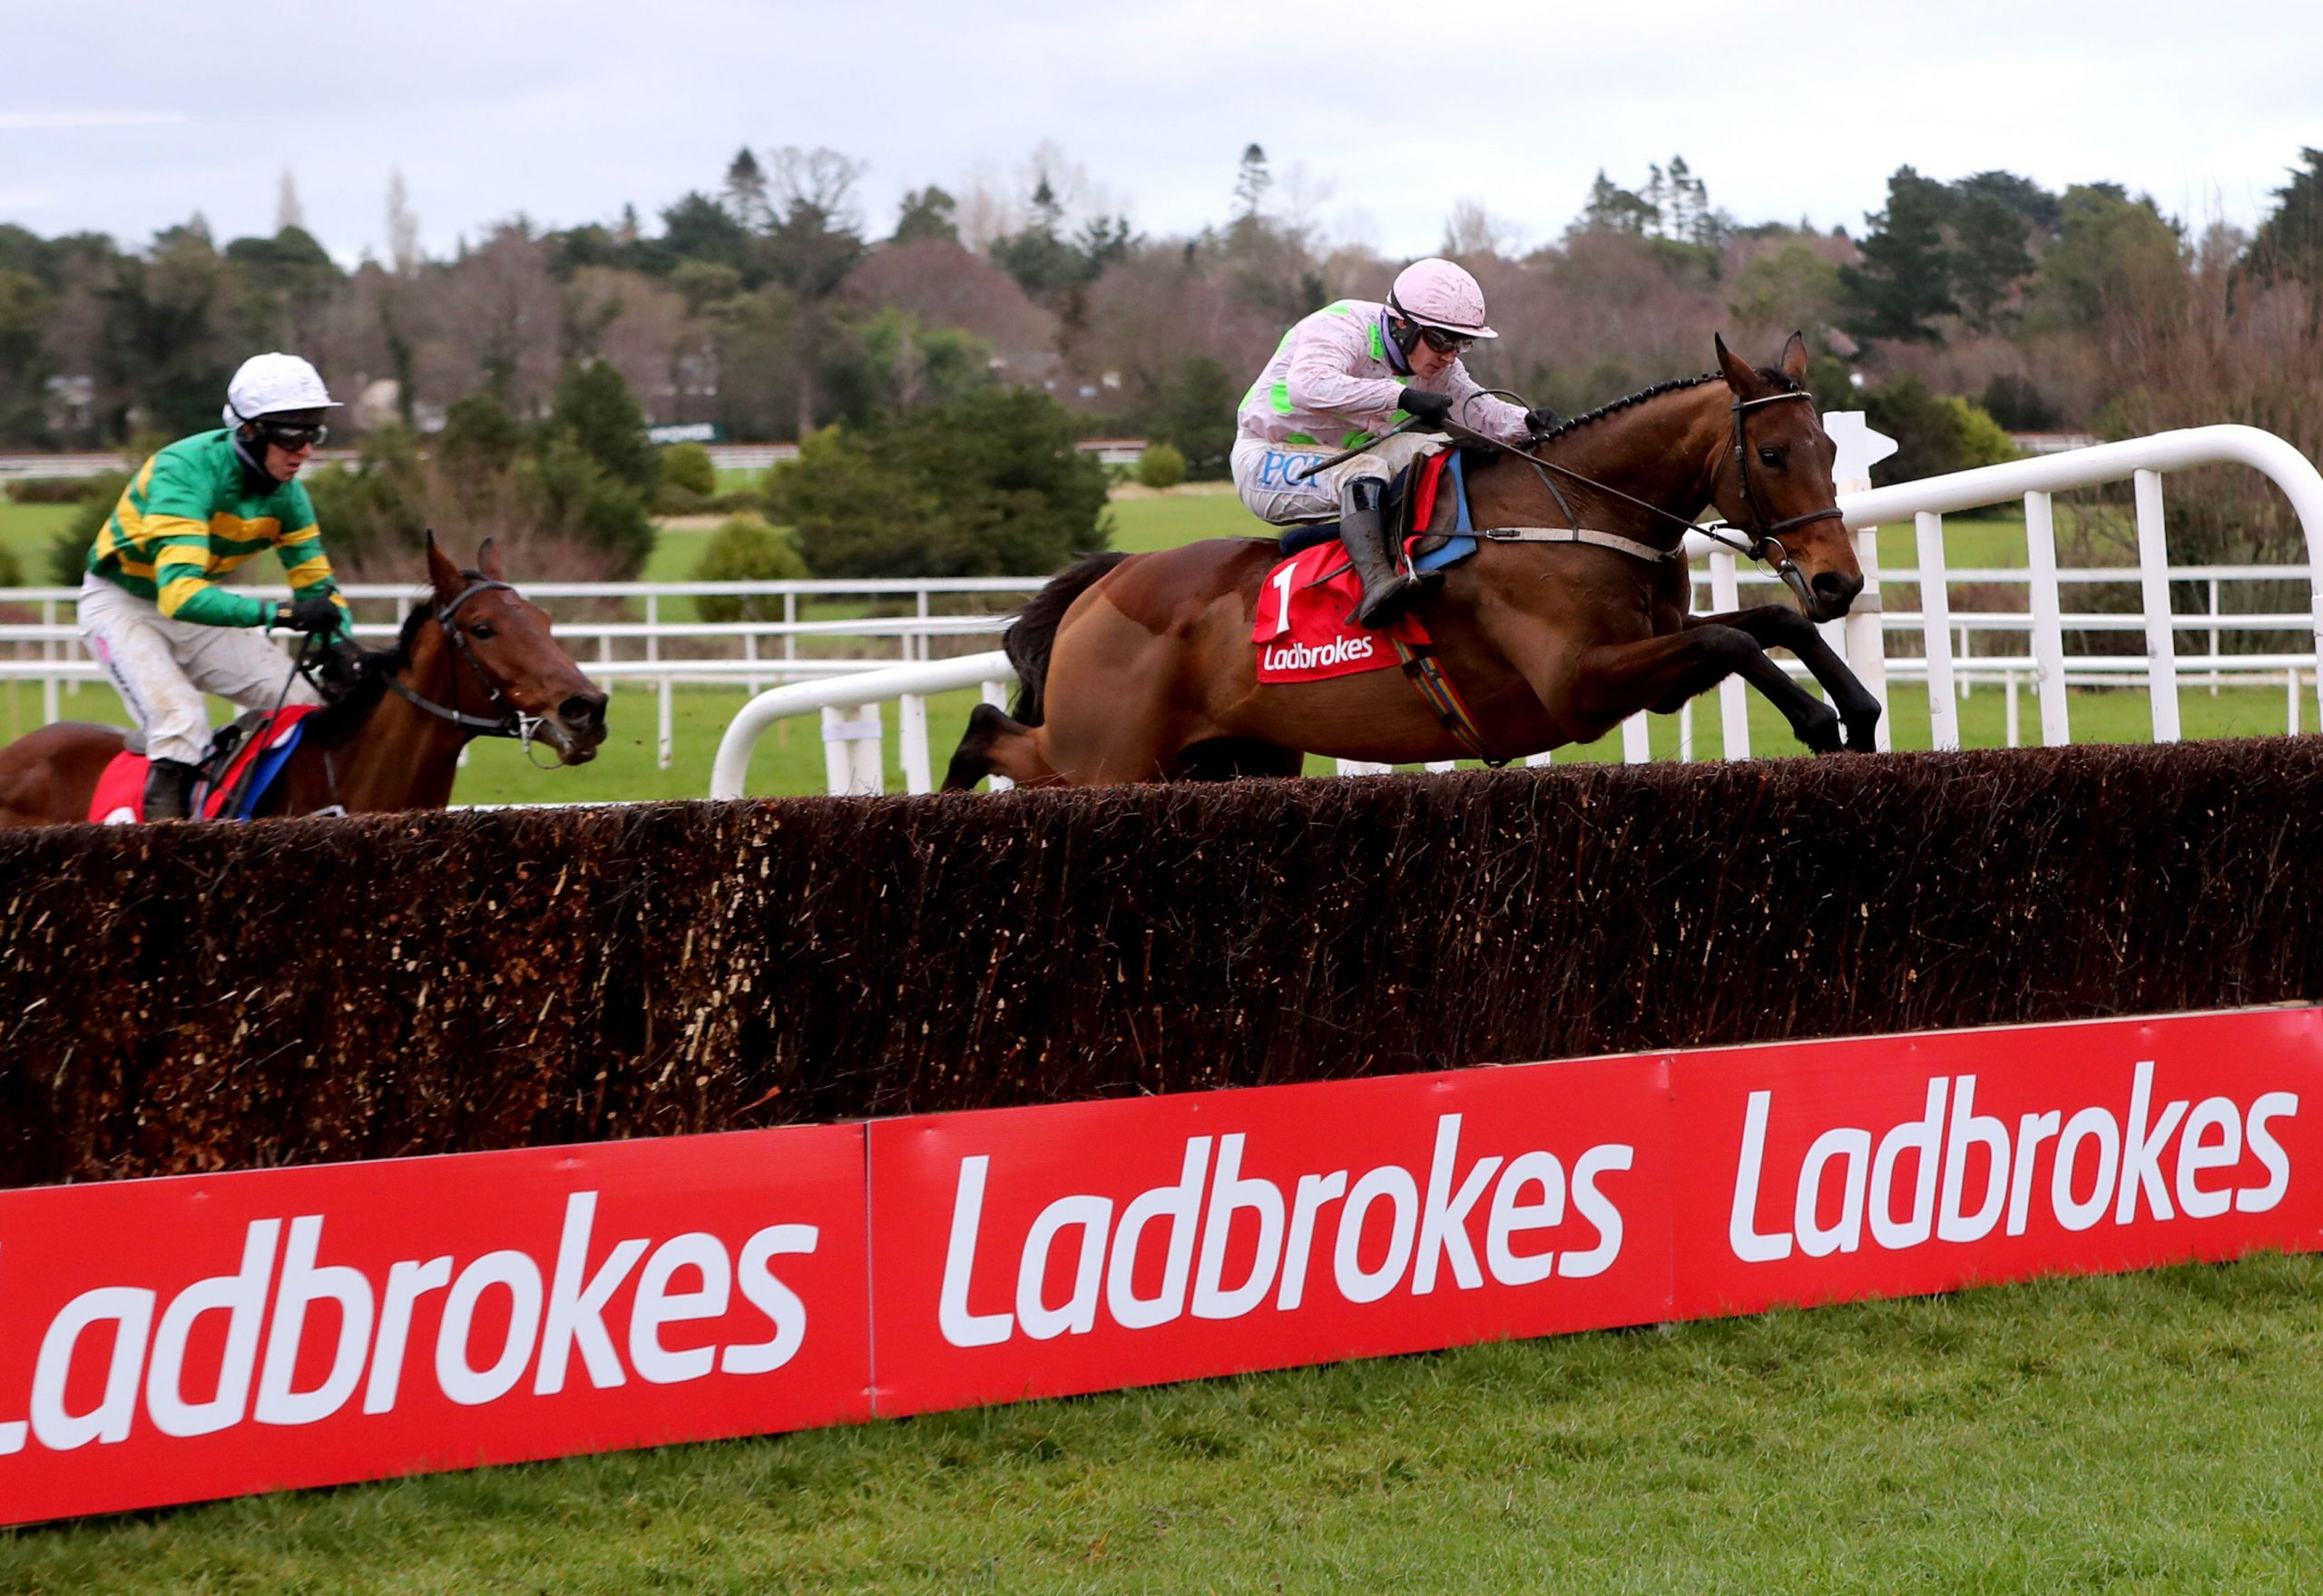 Chacun Pour Soi ridden by Paul Townend (right) clears a fence on their way to winning the Ladbrokes Dublin Chase during day one of the Dublin Racing Festival at Leopardstown Racecourse. Picture date: Saturday February 6, 2021.